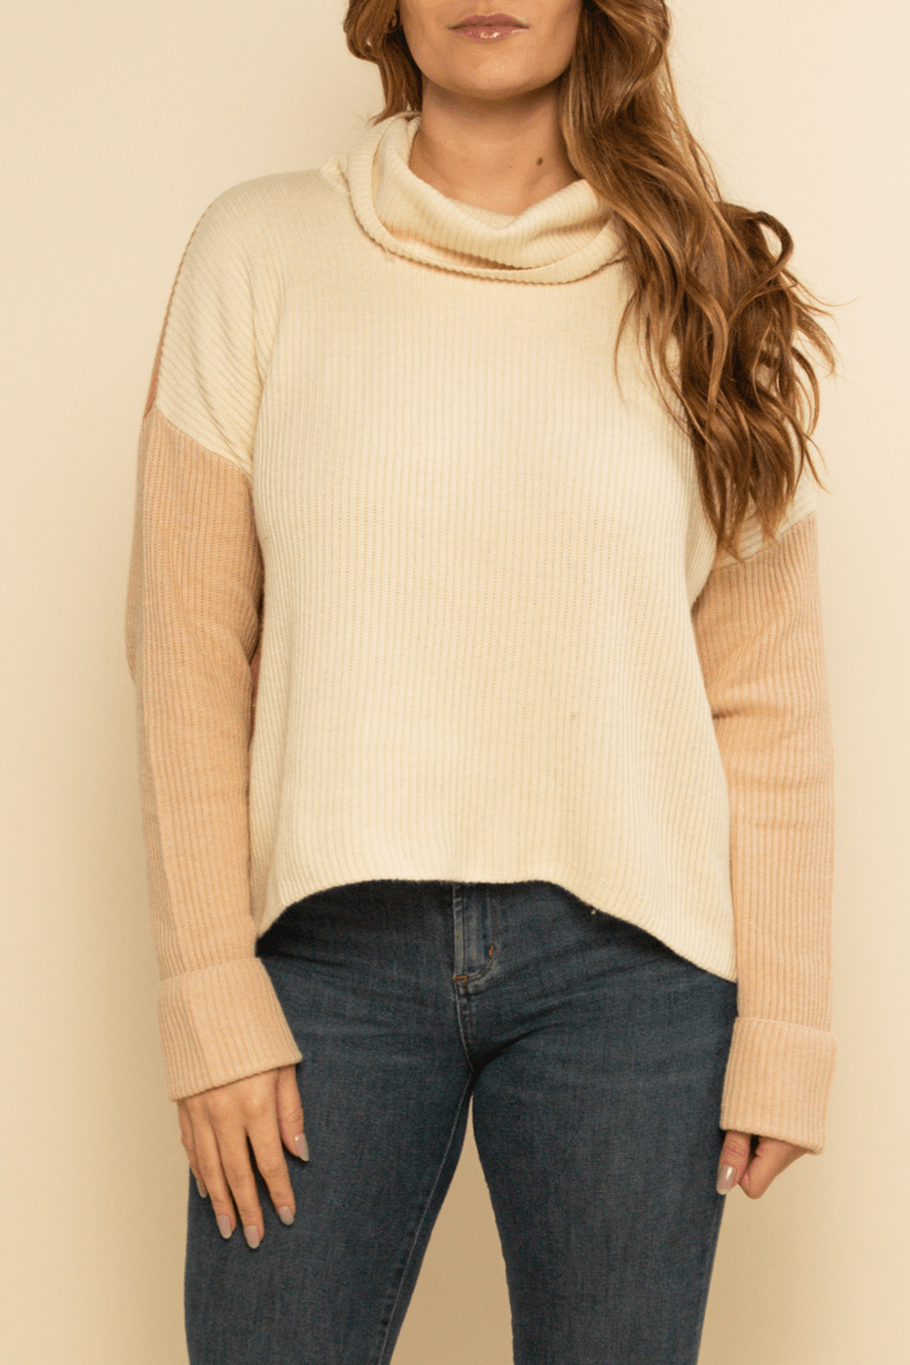 Vermont Sweater - Cream/Pink - Shore